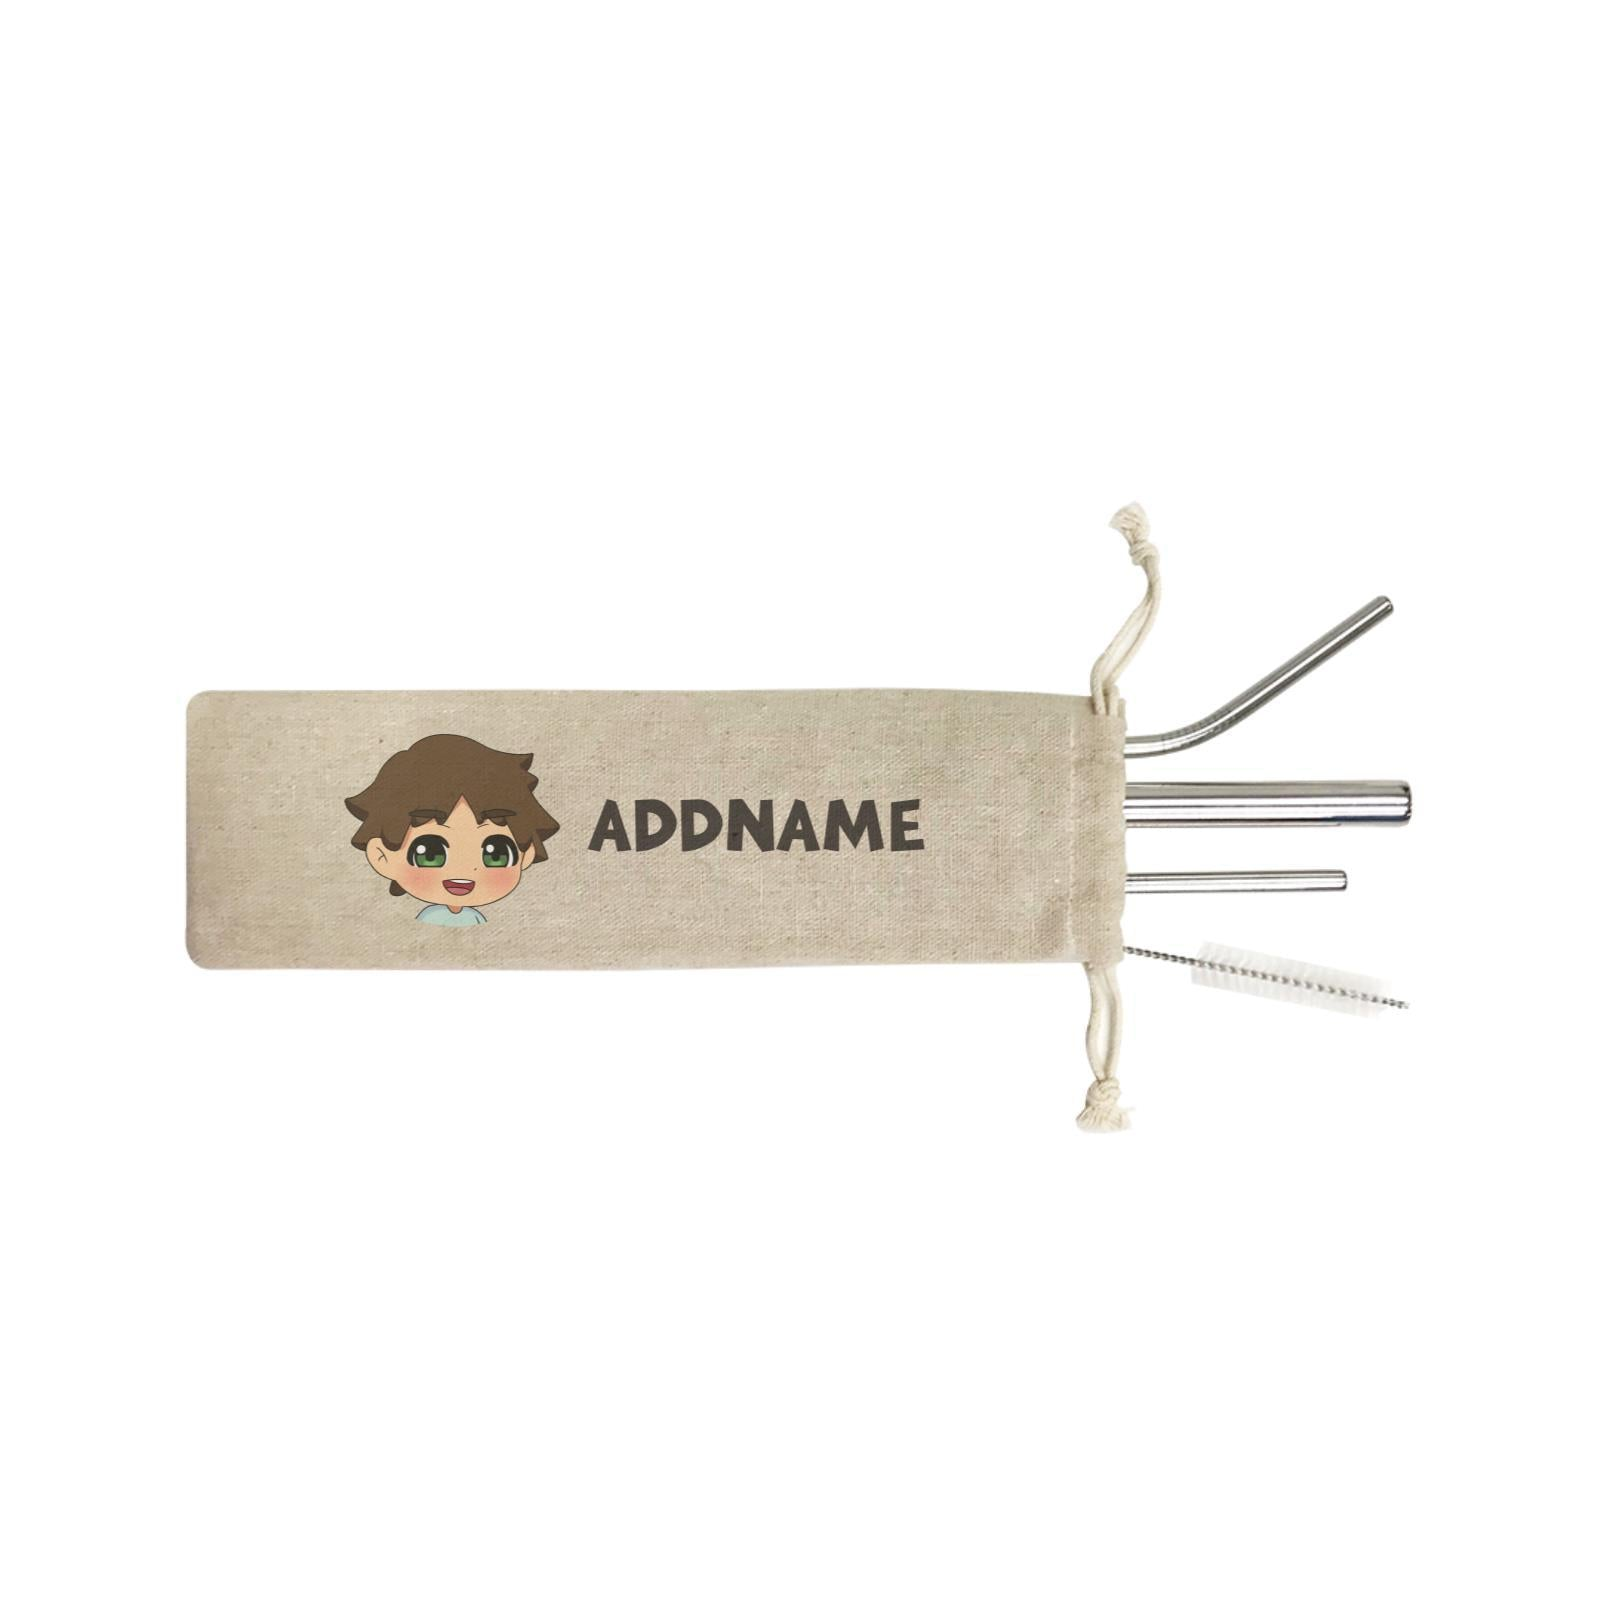 Children's Day Gift Series Little Boy Facing Left Addname SB 4-in-1 Stainless Steel Straw Set In a Satchel